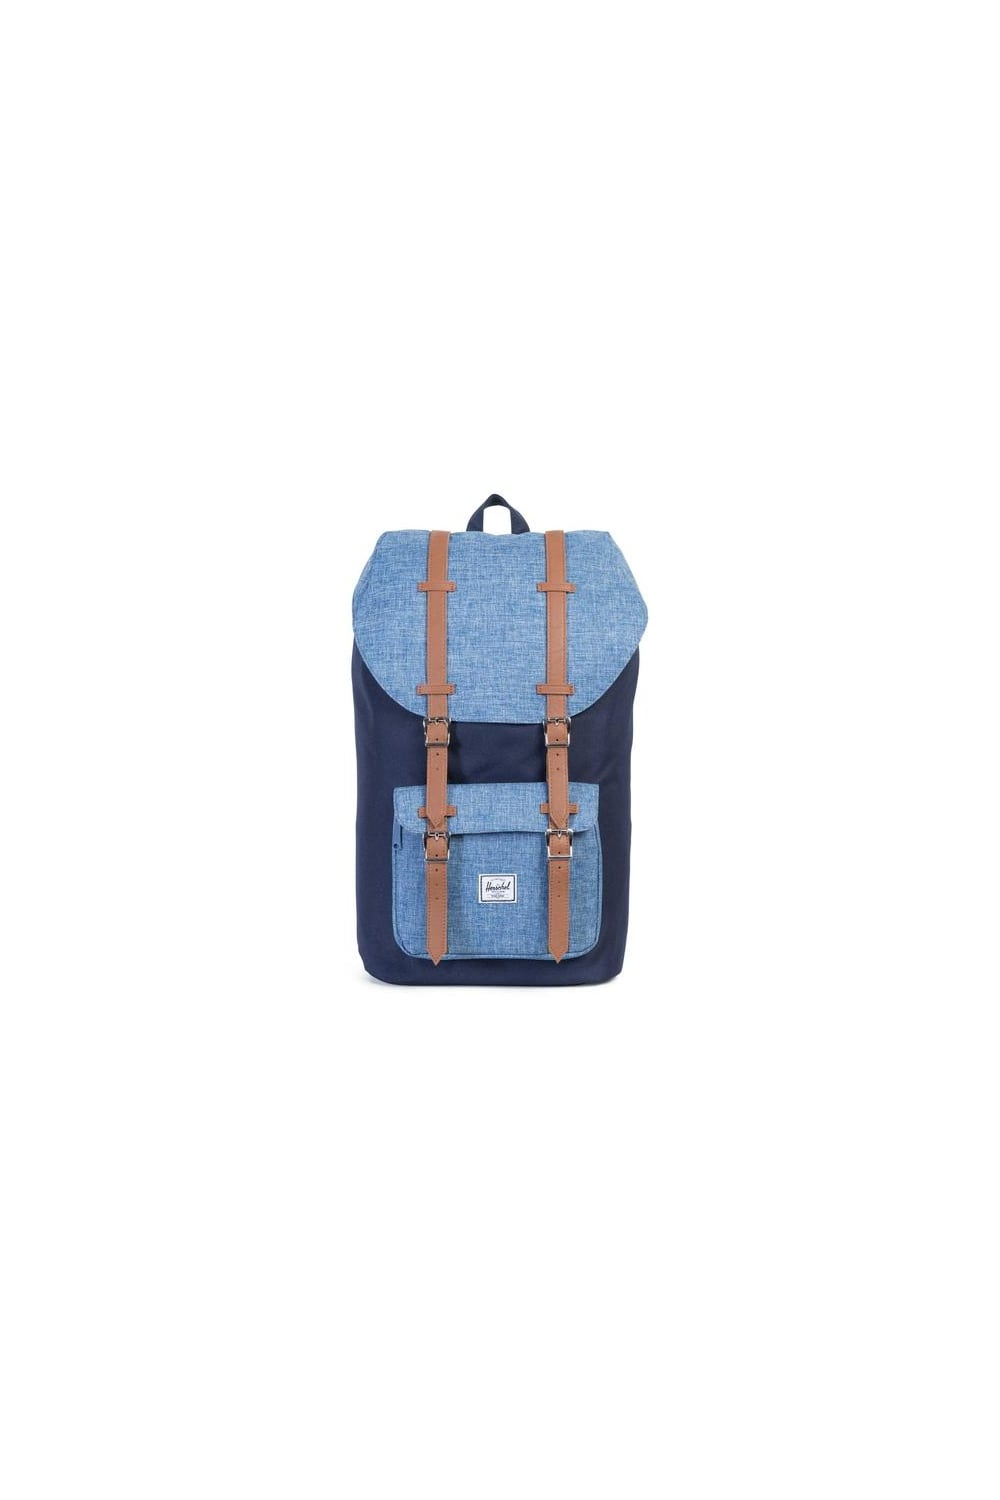 3cdeeb7903 Herschel Supply Co Little America Backpack (Peacoat)